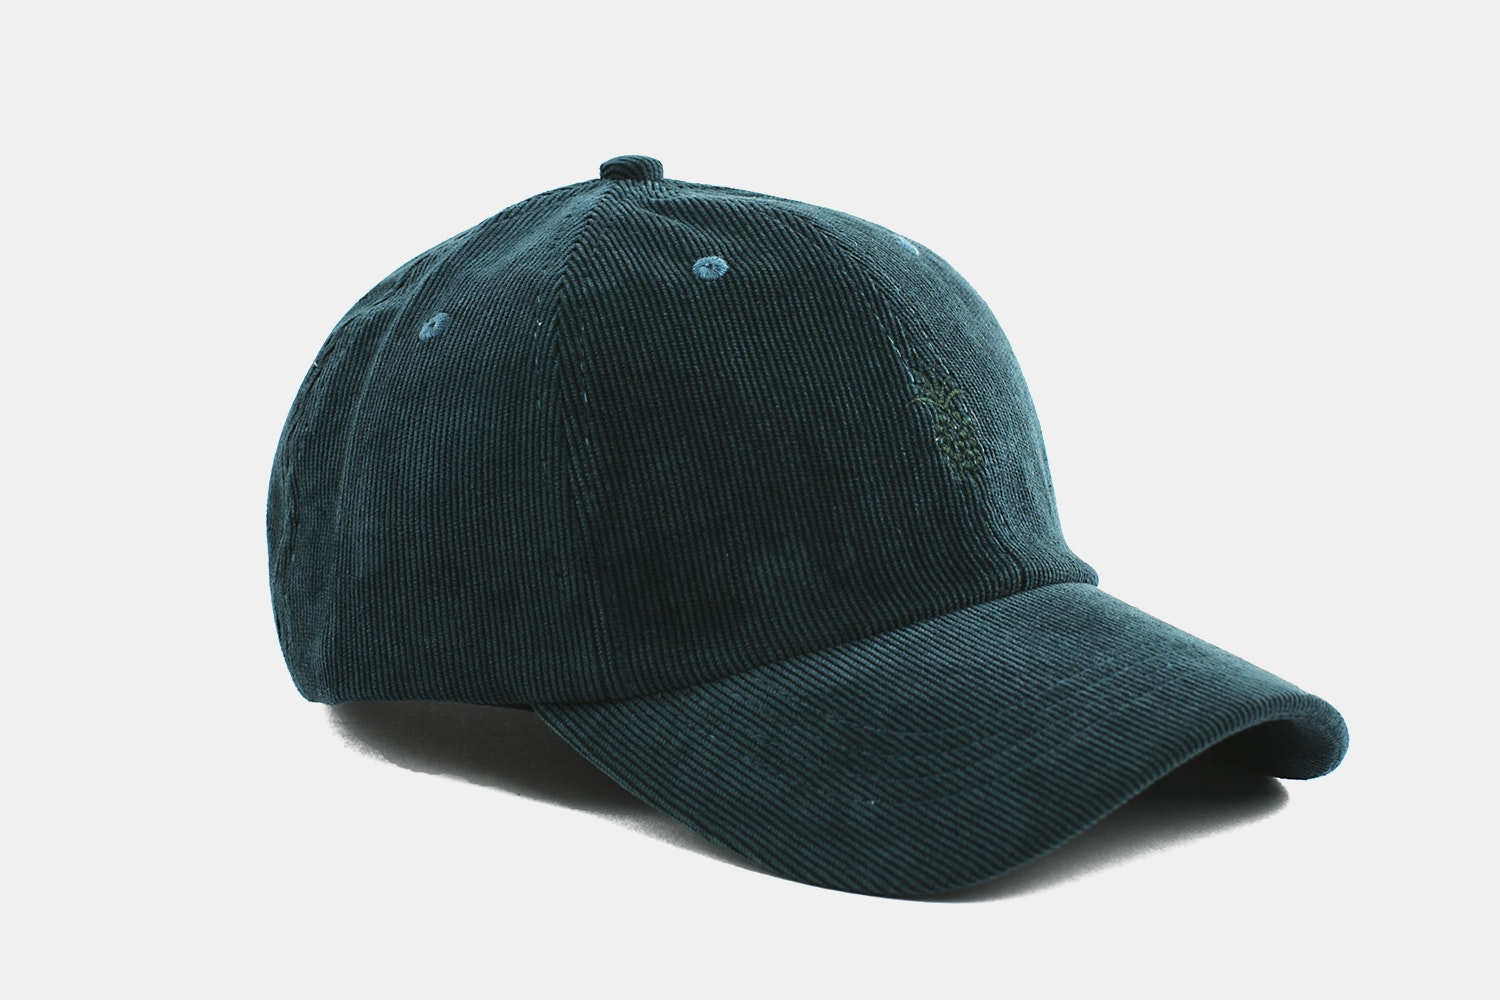 Pineapple Corduroy Cap - Pine Green